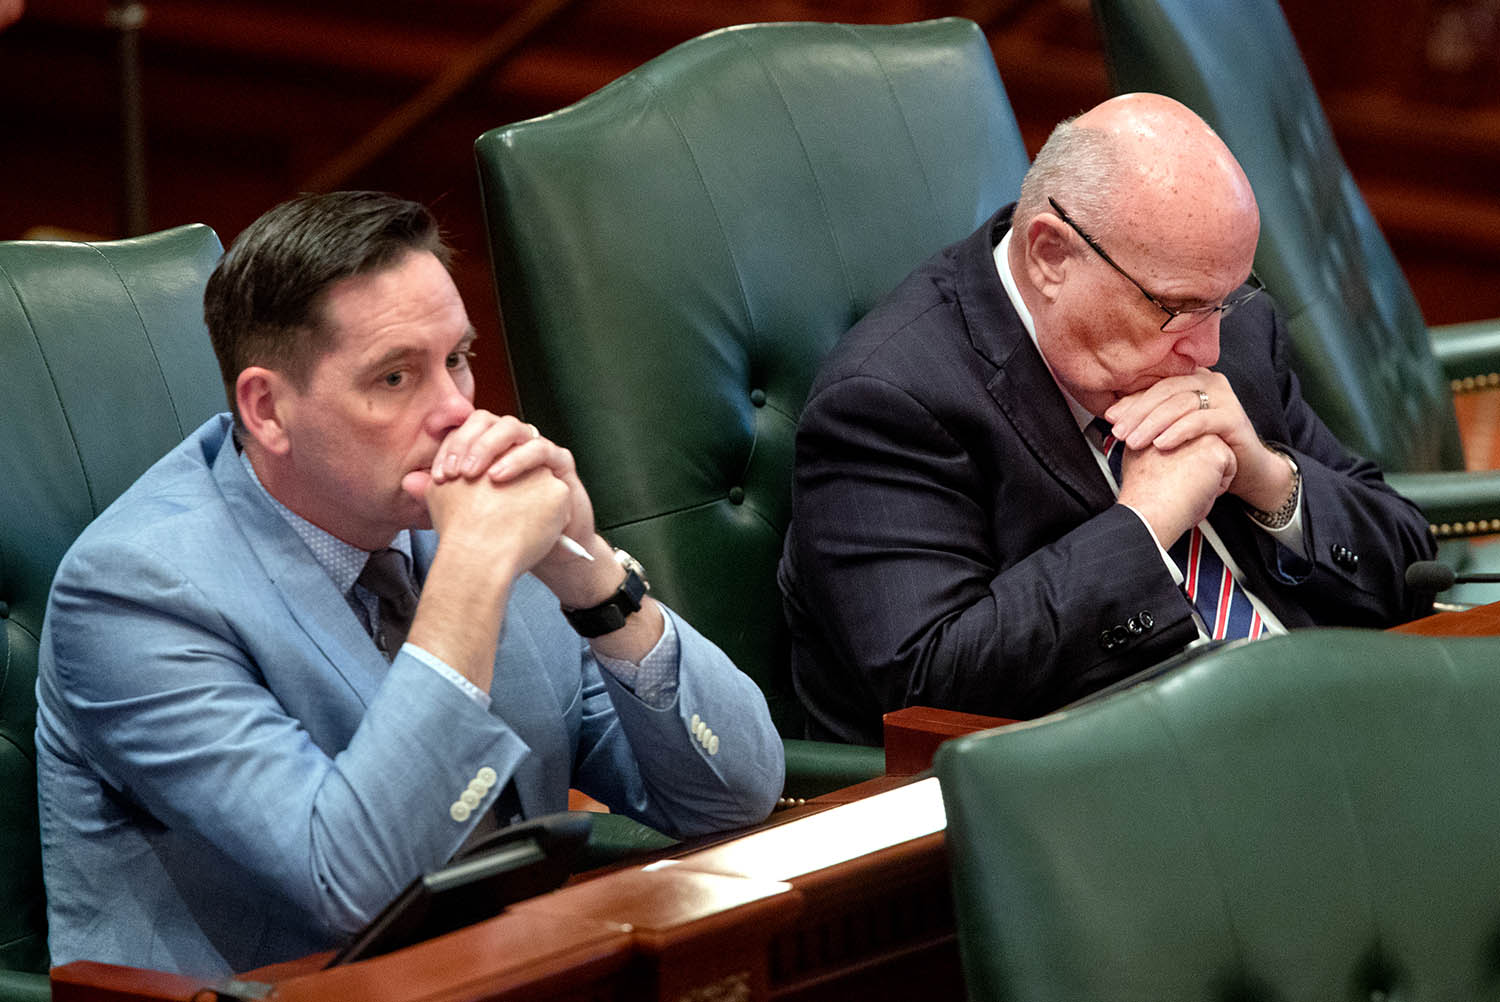 Illinois state Rep. Mike Murphy, R-Springfield, bows his head as he listens to debate on the Reproductive Health Act on the floor of the Illinois House chambers Tuesday, May 28, 2019. State Rep. Tim Butler, R-Springfield, is at left. [Ted Schurter/The State Journal-Register]